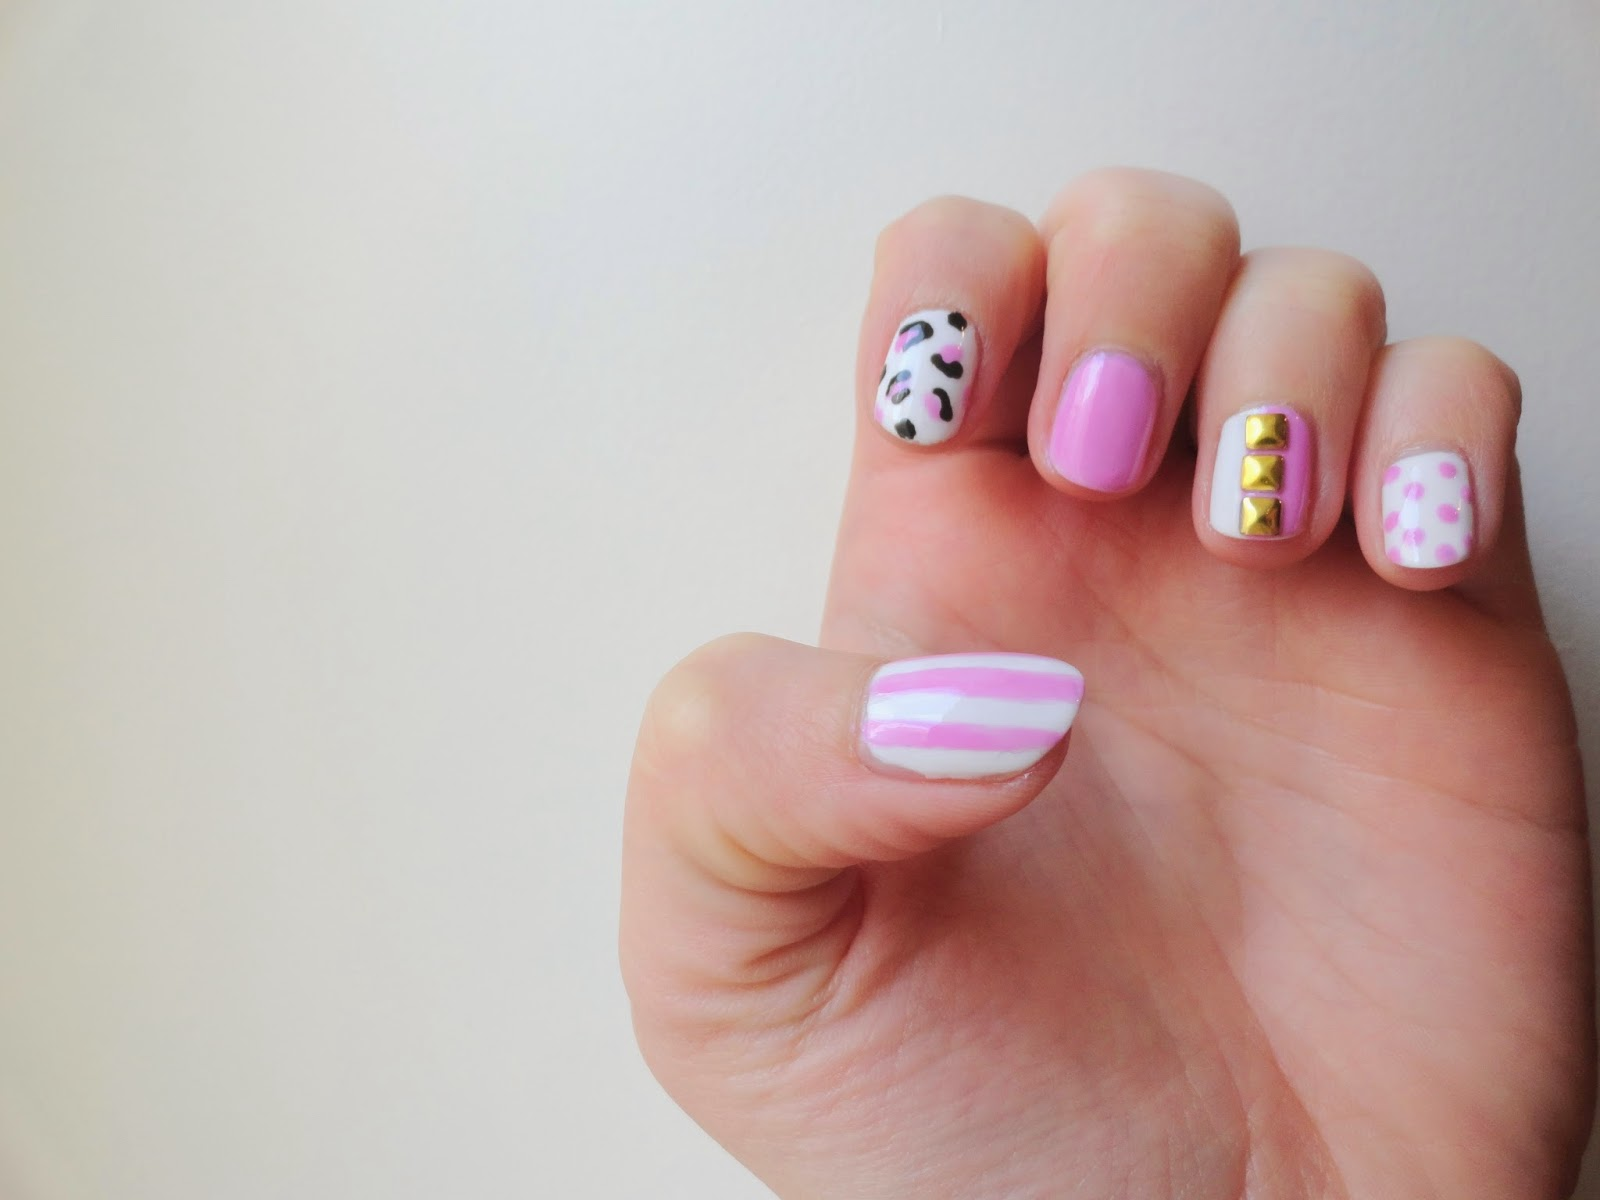 Clothes & Dreams: NOTD: All Things Pink: nail art striped pink on white, pink leopard print, pastel nail, white and pink with golden stud separator and pinks dots on white